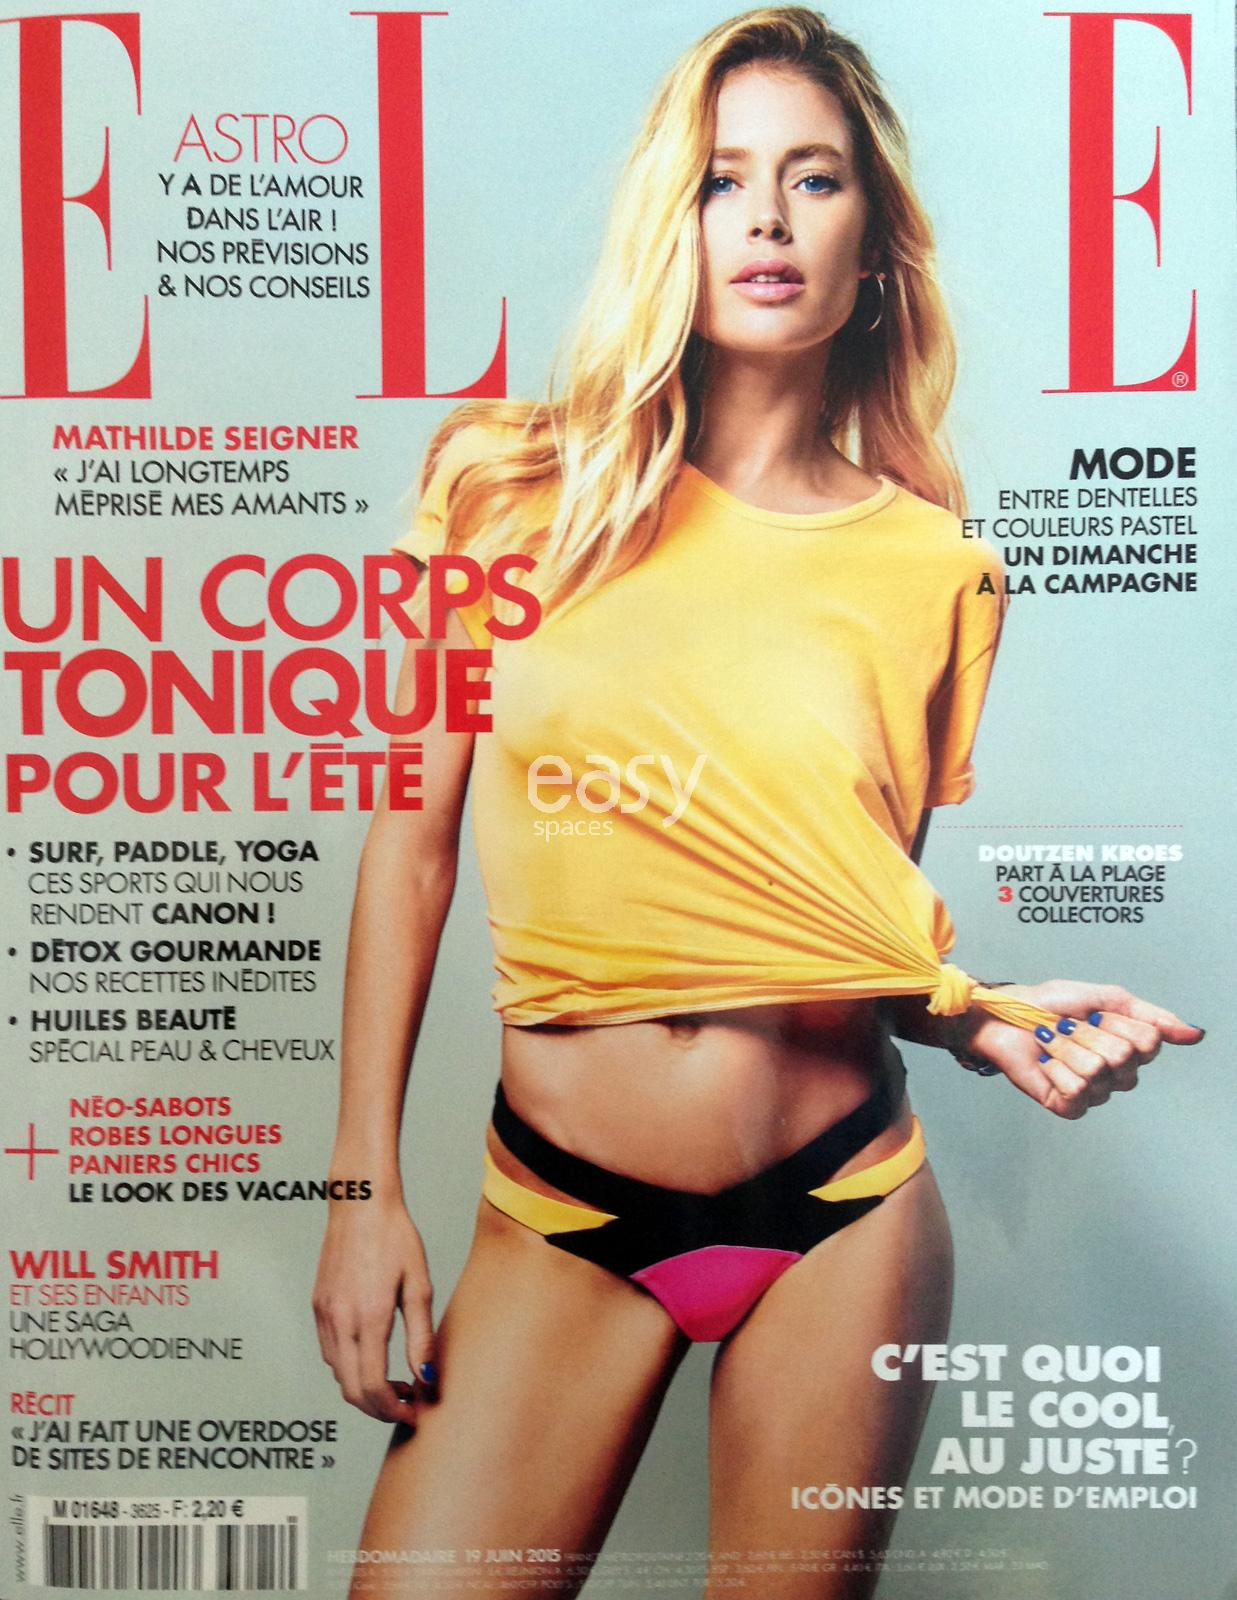 shooting photo avec Doutzen Kroes à Cannes pendant le Festival 2015